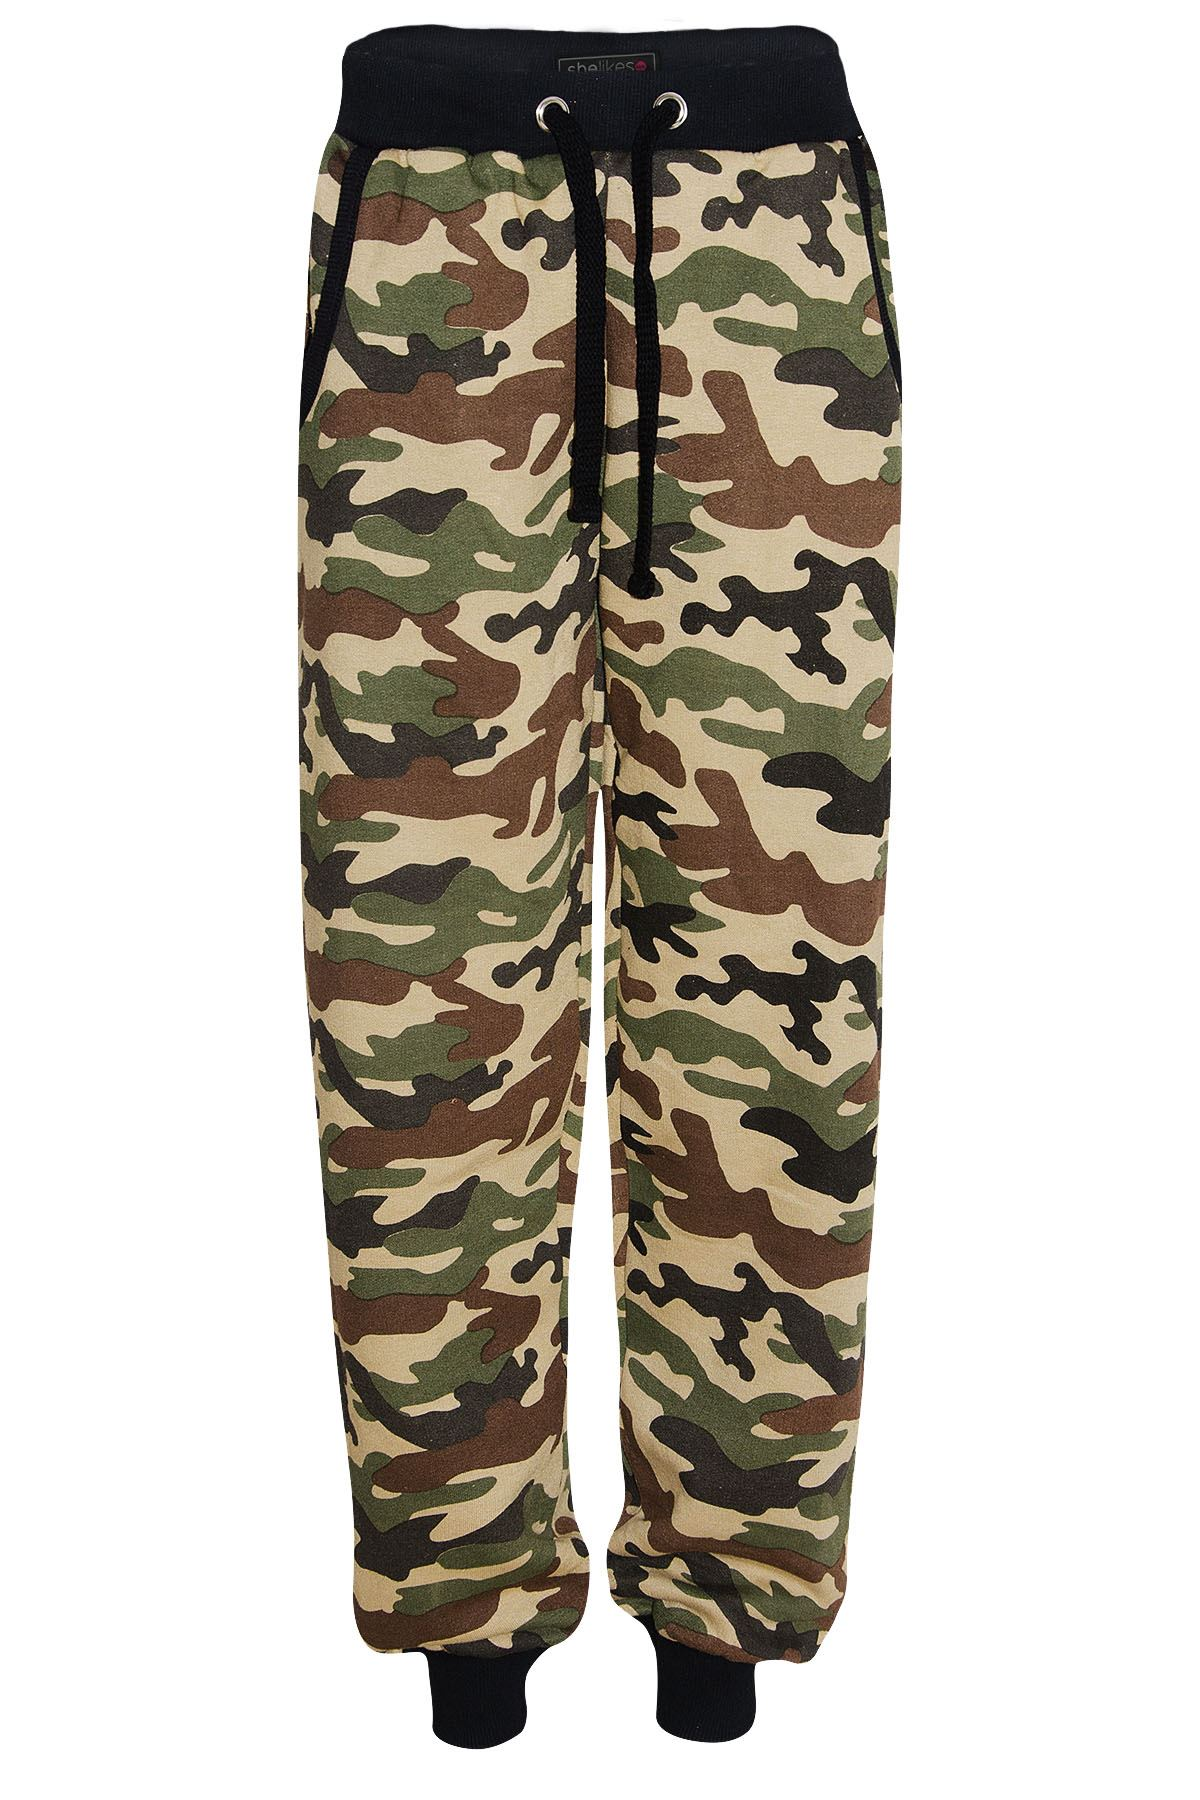 Brilliant STYLISH MONARDA WOMEN CAMOUFLAGE CAMO JOGGER PANTS JUNIOR SIZE S  3XL